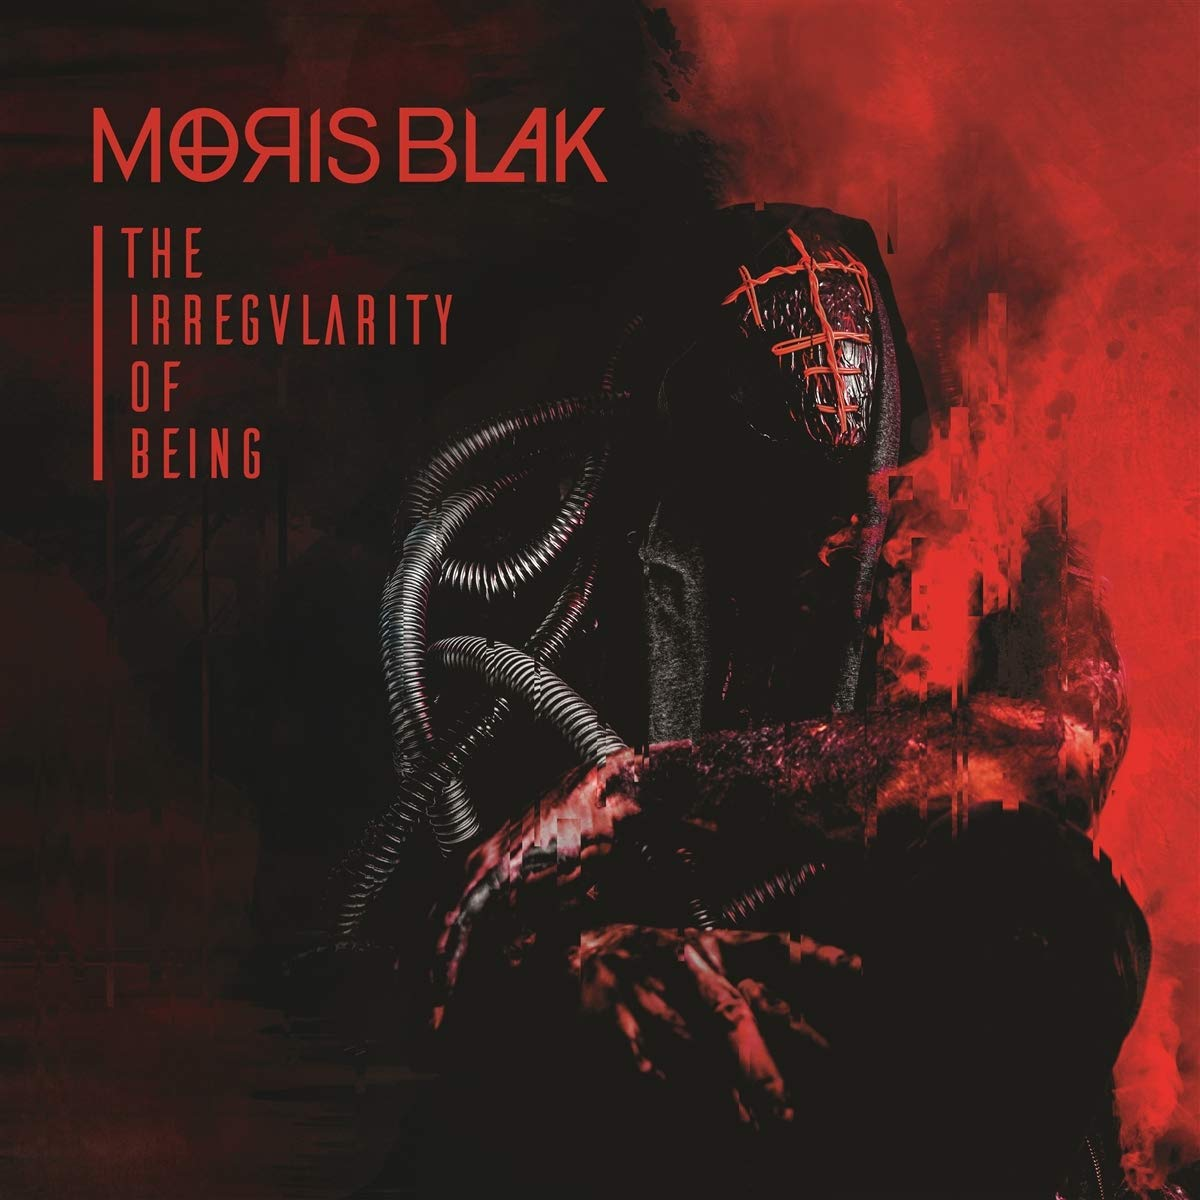 Moris Blak – The Irregularity Of Being (2019) [FLAC]